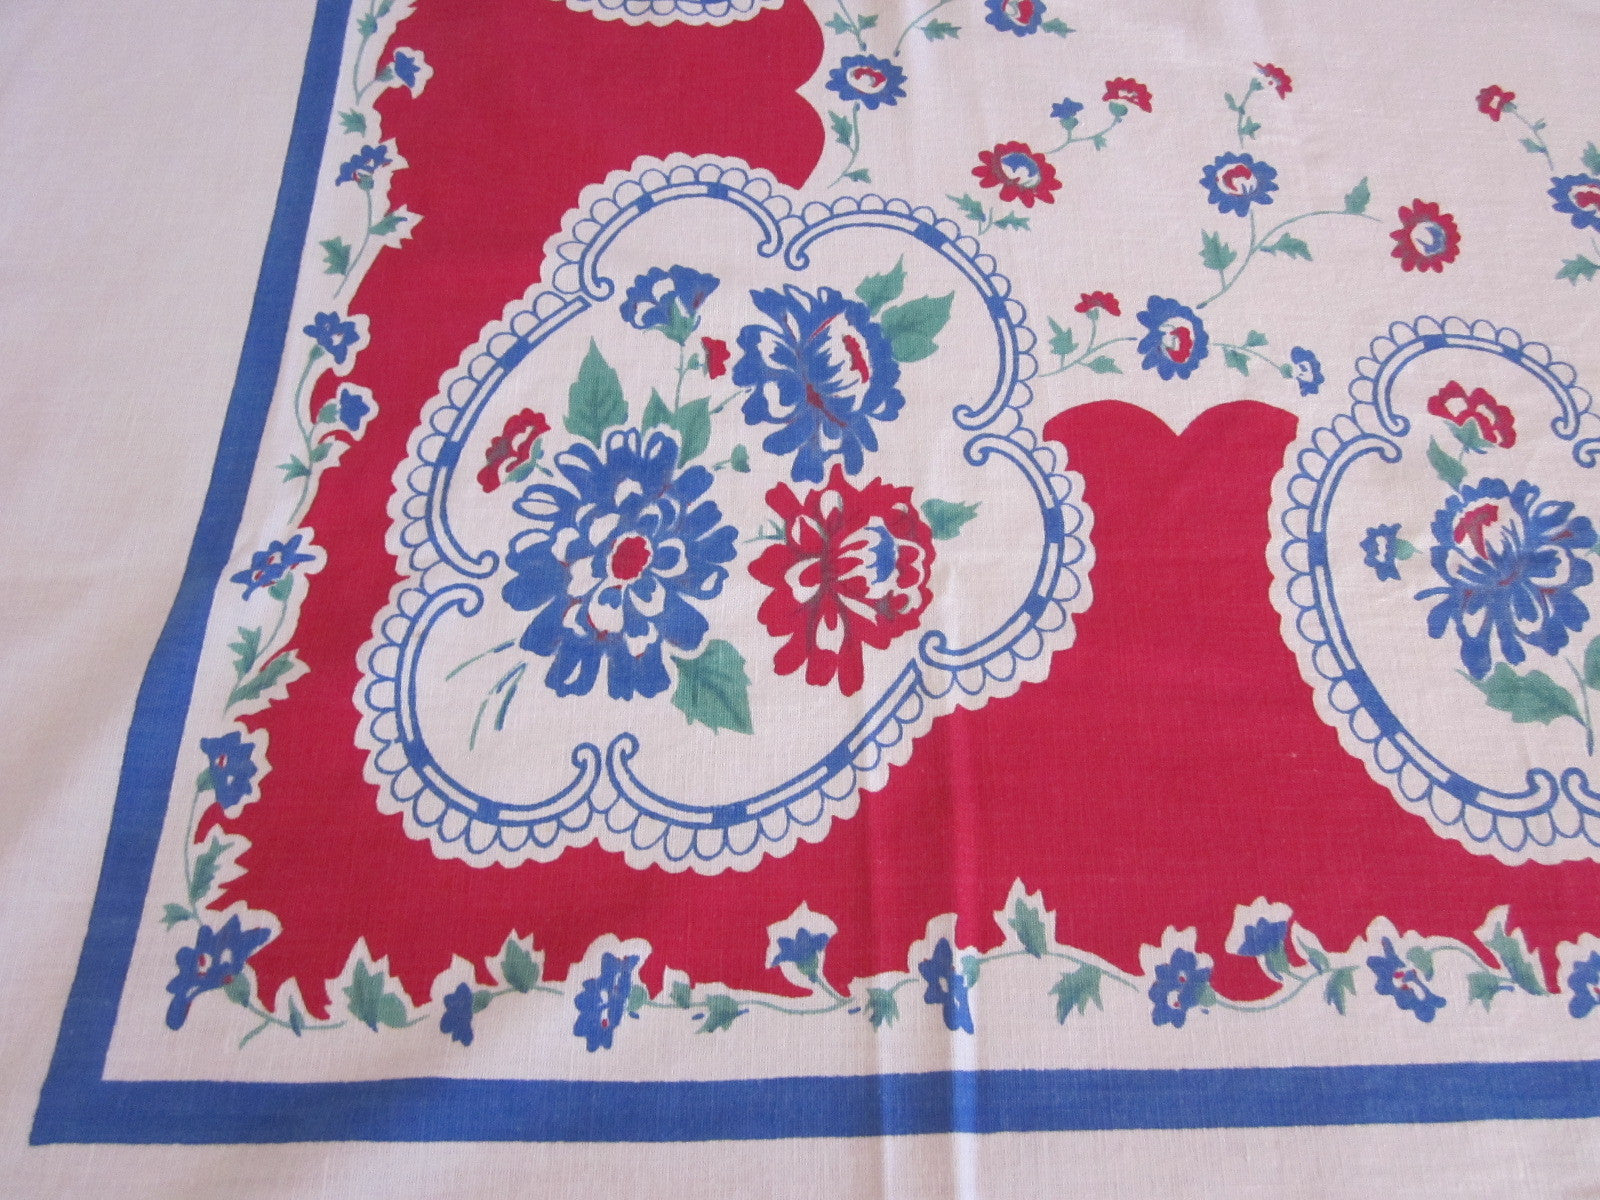 Larger Primary Red Blue Green Floral Vintage Printed Tablecloth (66 X 61)